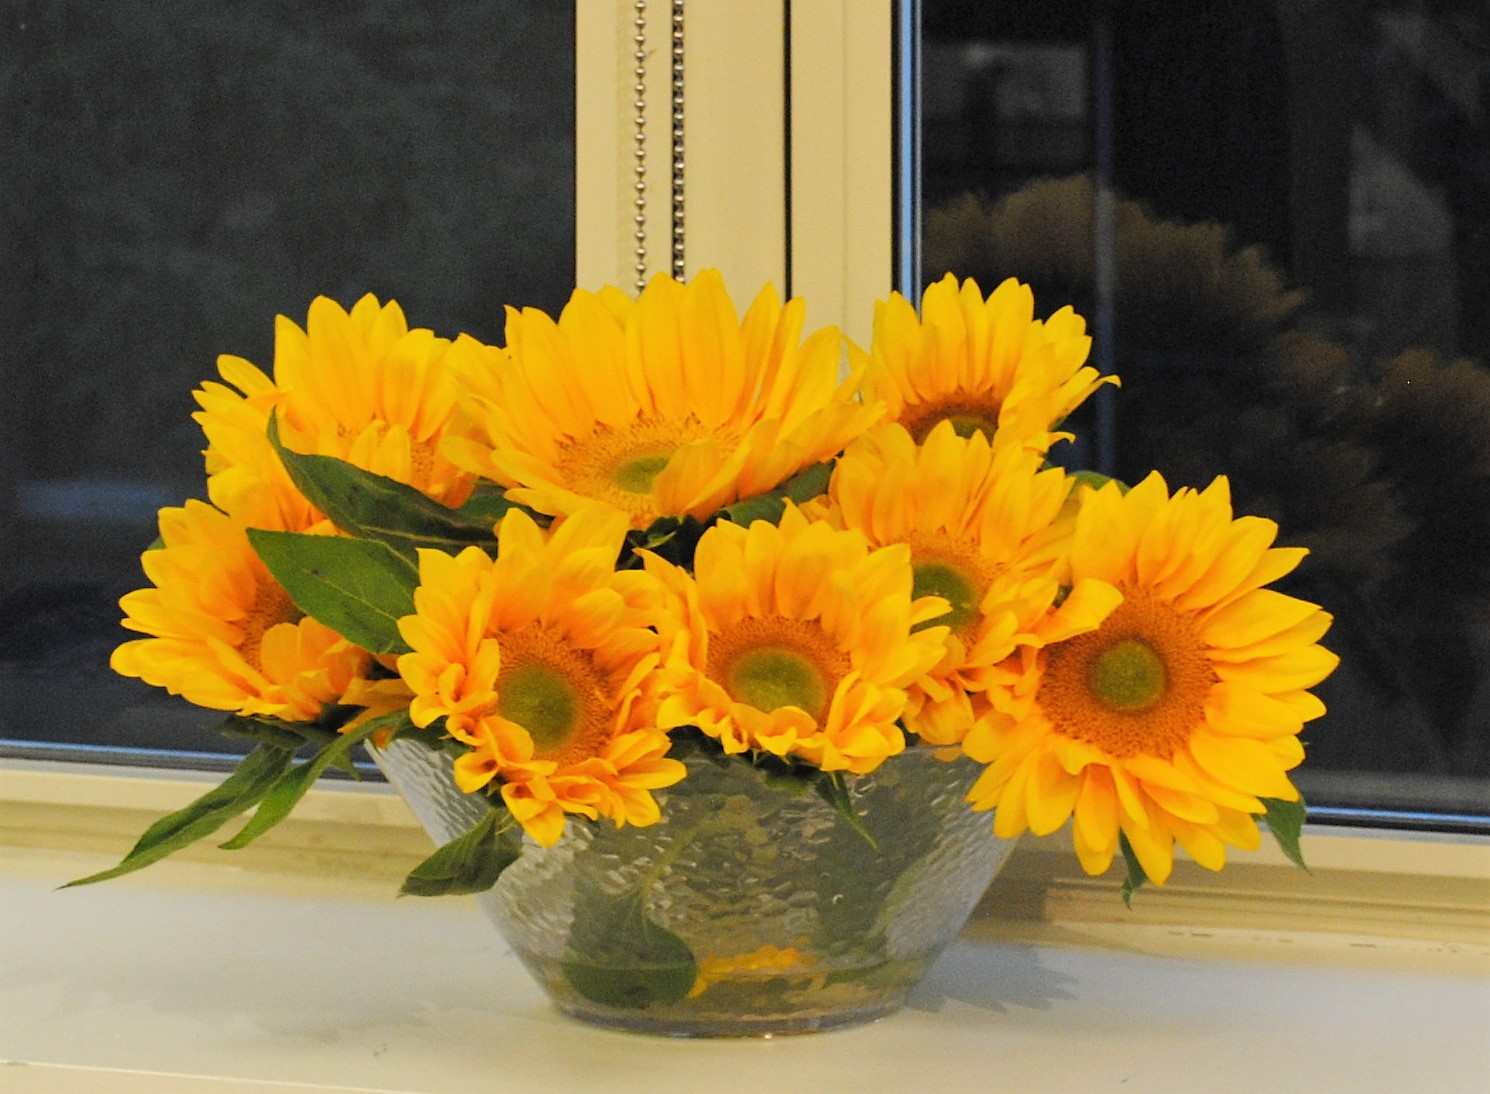 sunflowers_37012440174_o.jpg